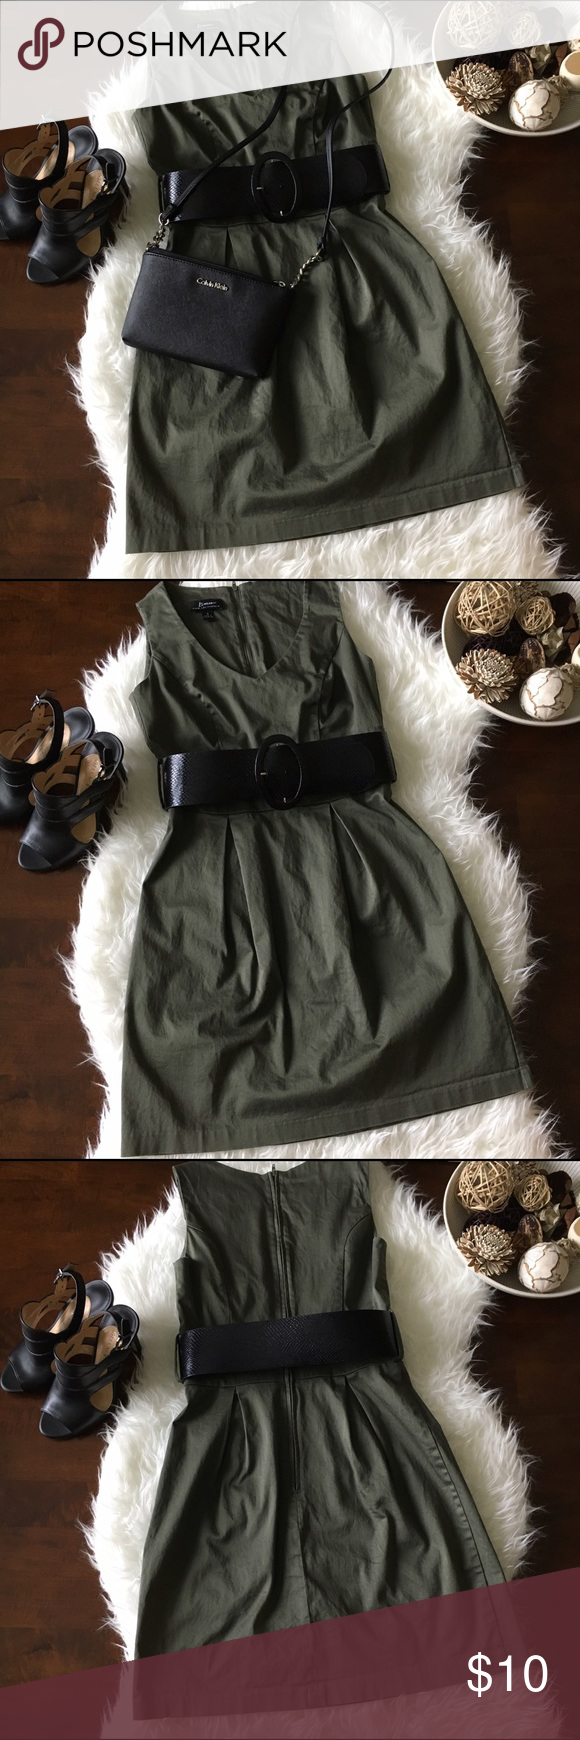 Olive Dress With Belt Great used condition. Previously LOVED. Classy olive dress with wide faux snake skin belt. Flattering neckline. No tears, holes, or stains. Smoke free home. No trades please. Dresses